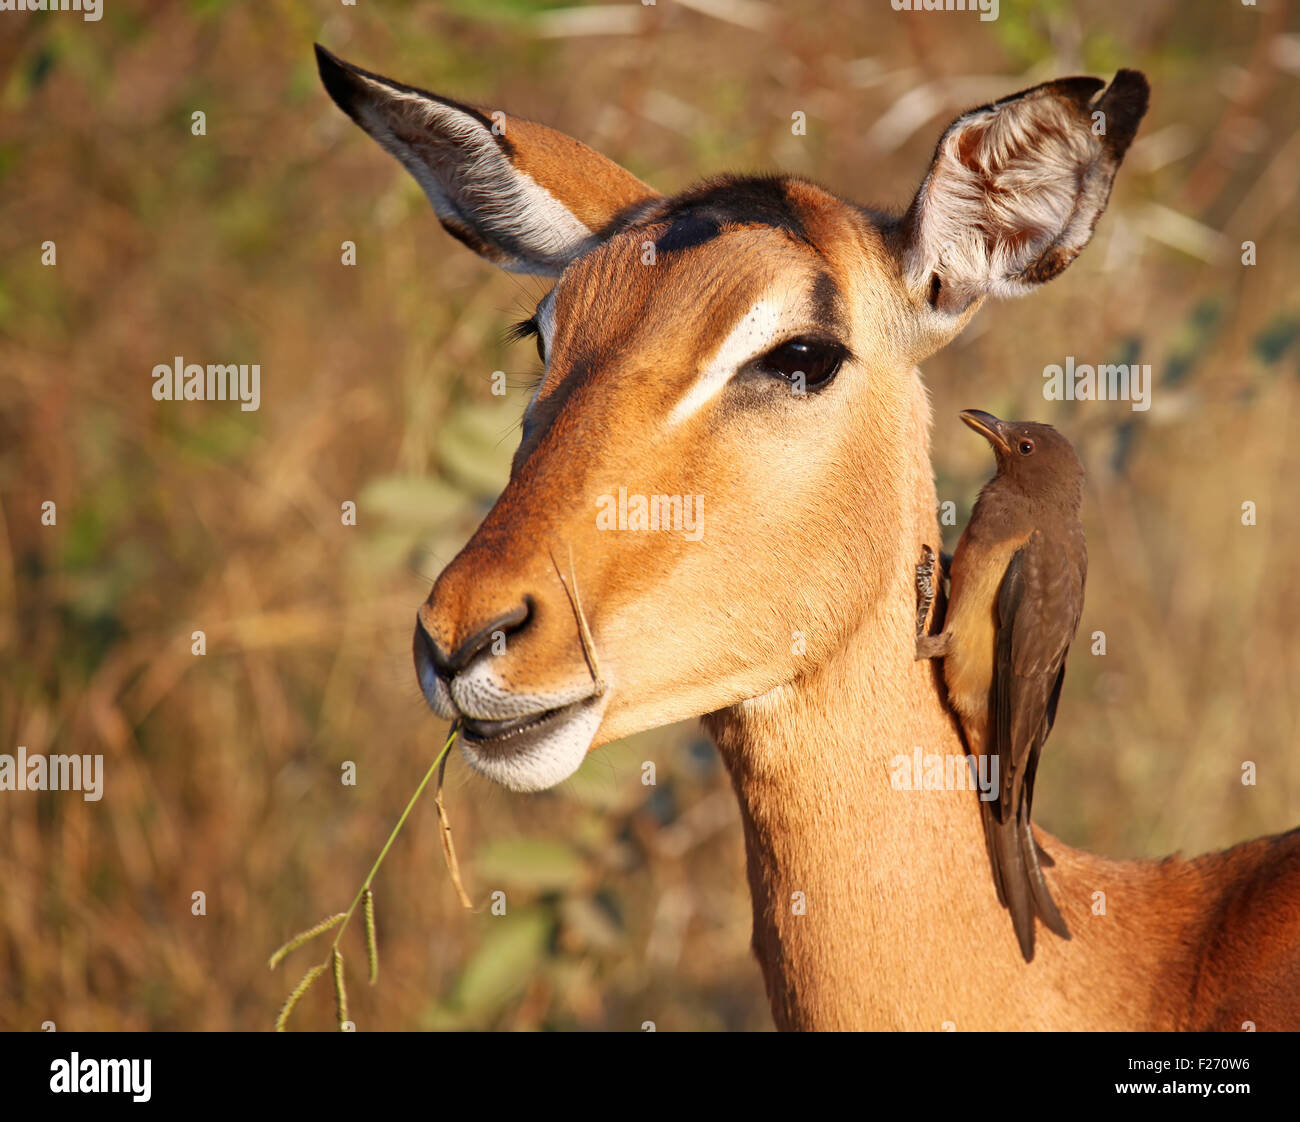 Impala with oxpecker in South Africa, Aepyceros melampus Stock Photo